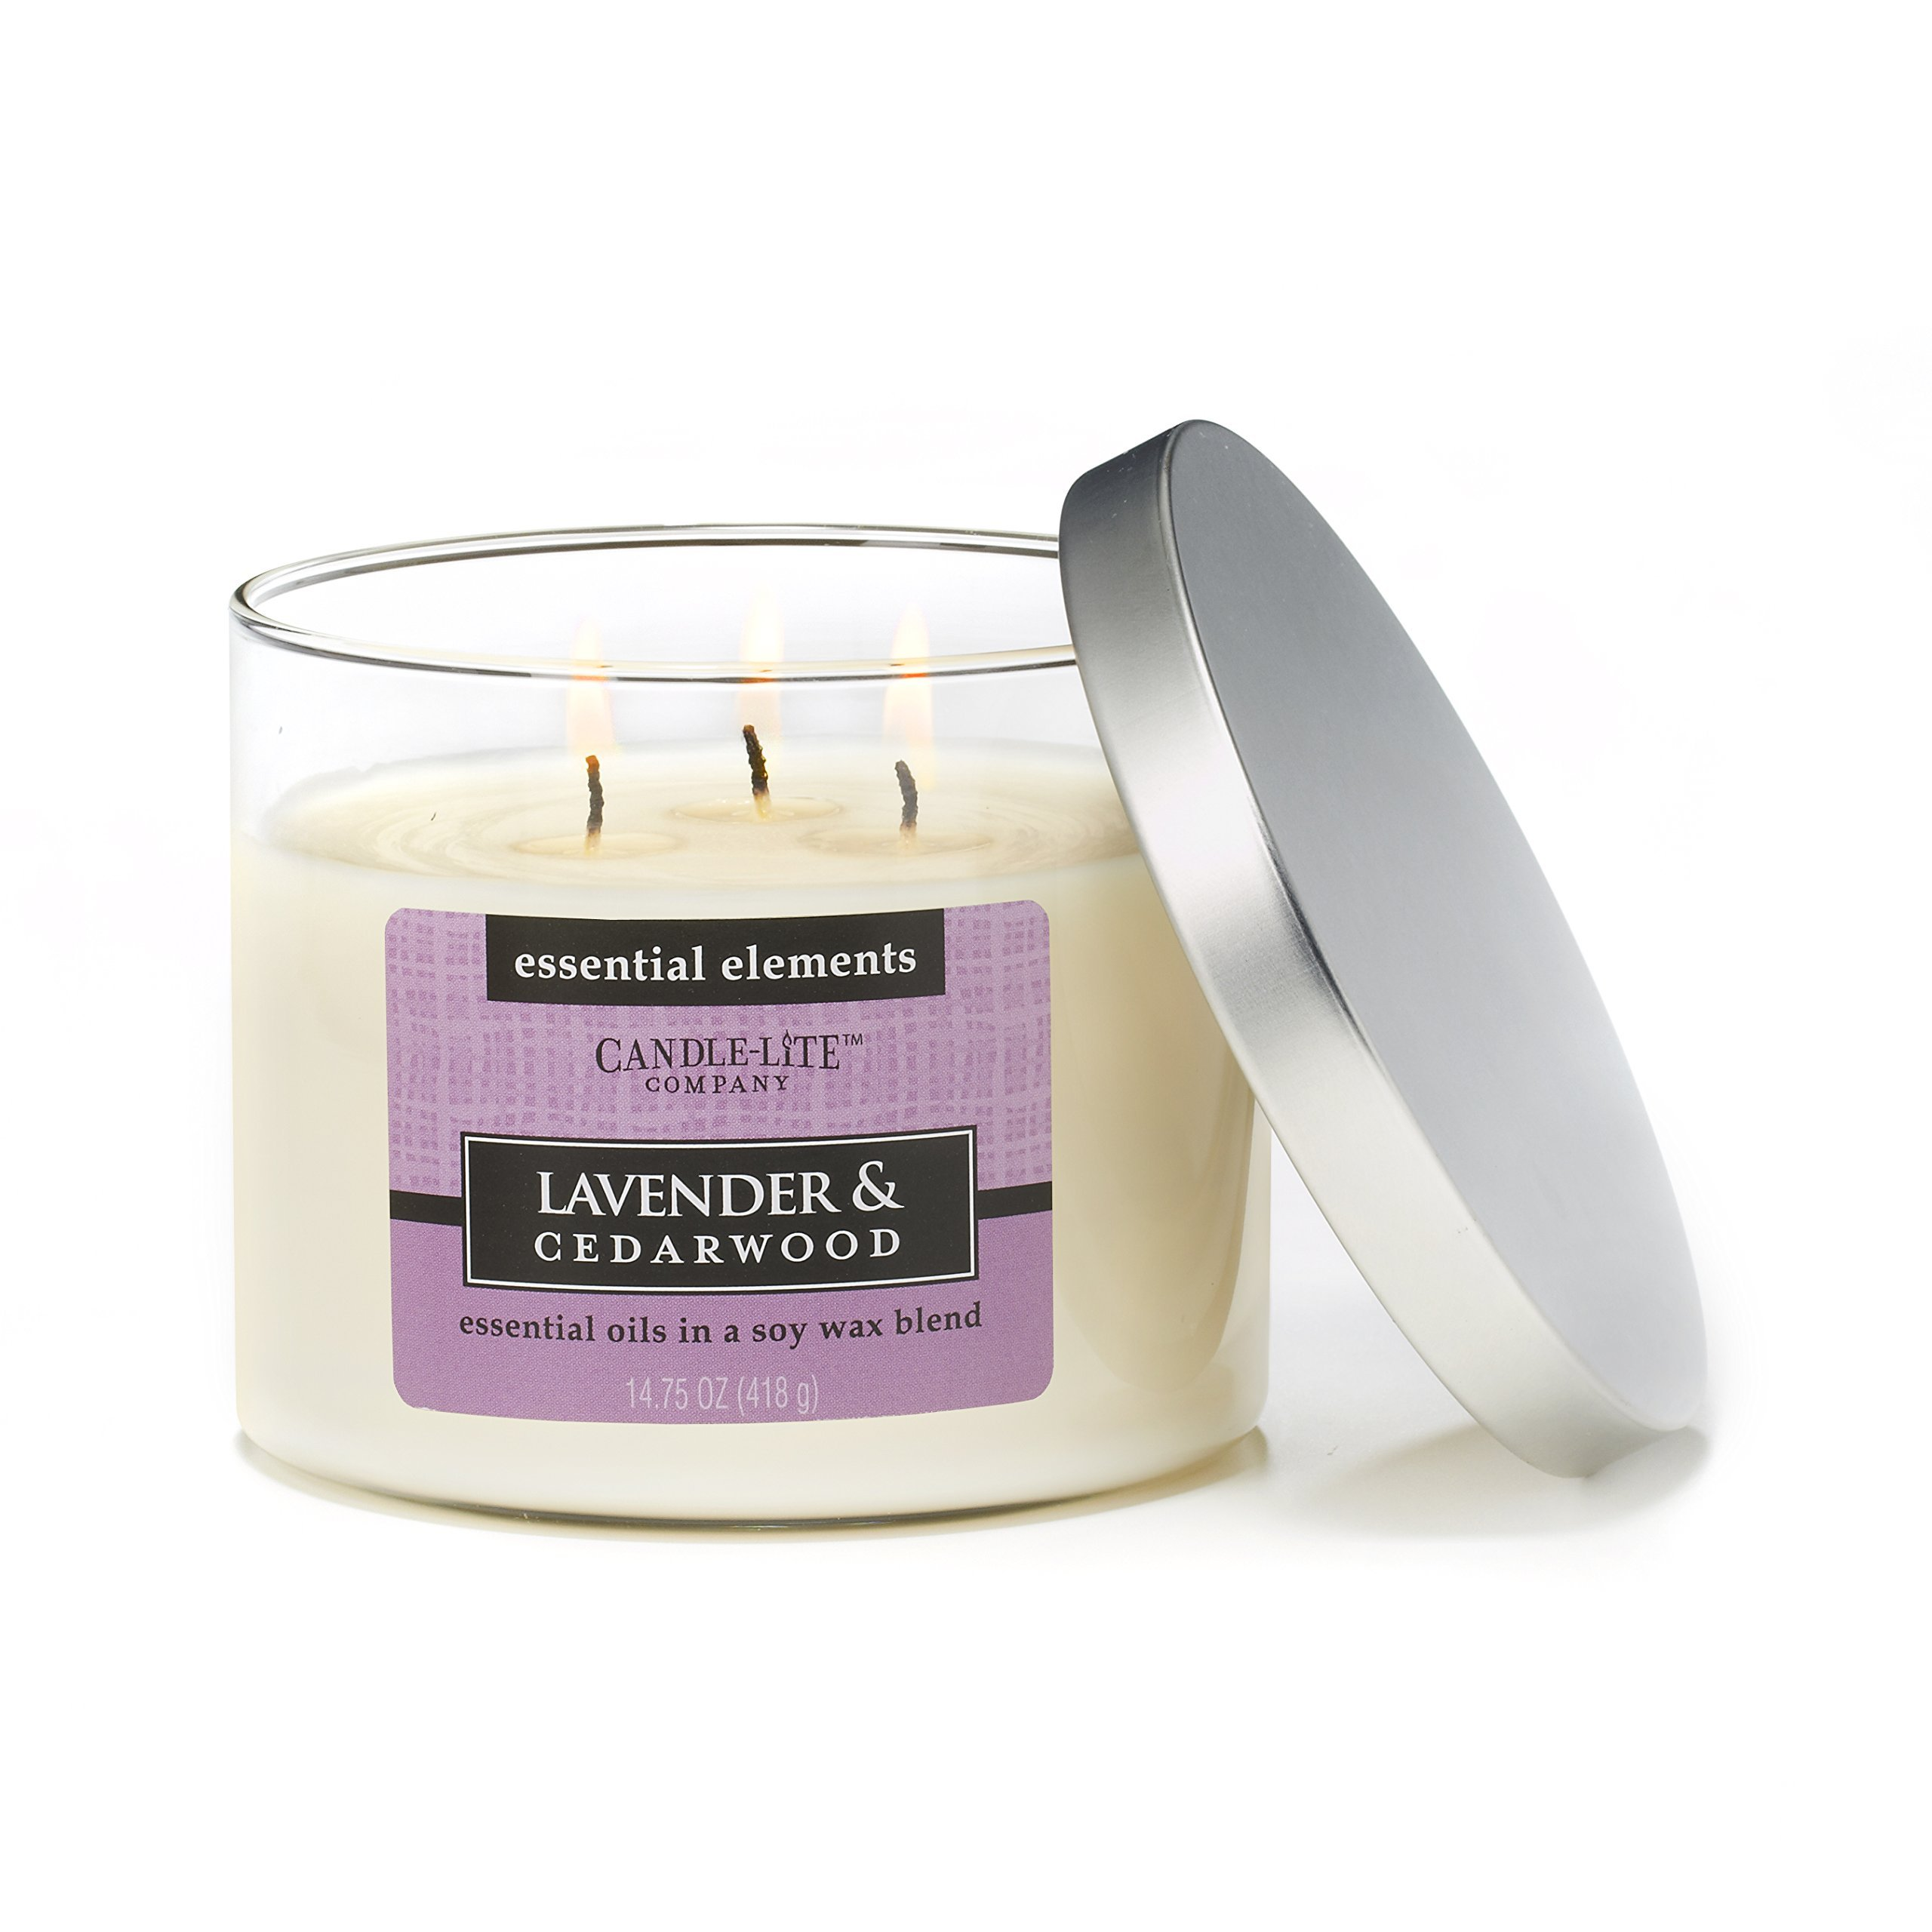 CANDLE-LITE Essential Elements 14-3/4-Ounce 3 Wick Candle with Soy Wax, Lavender and Cedarwood